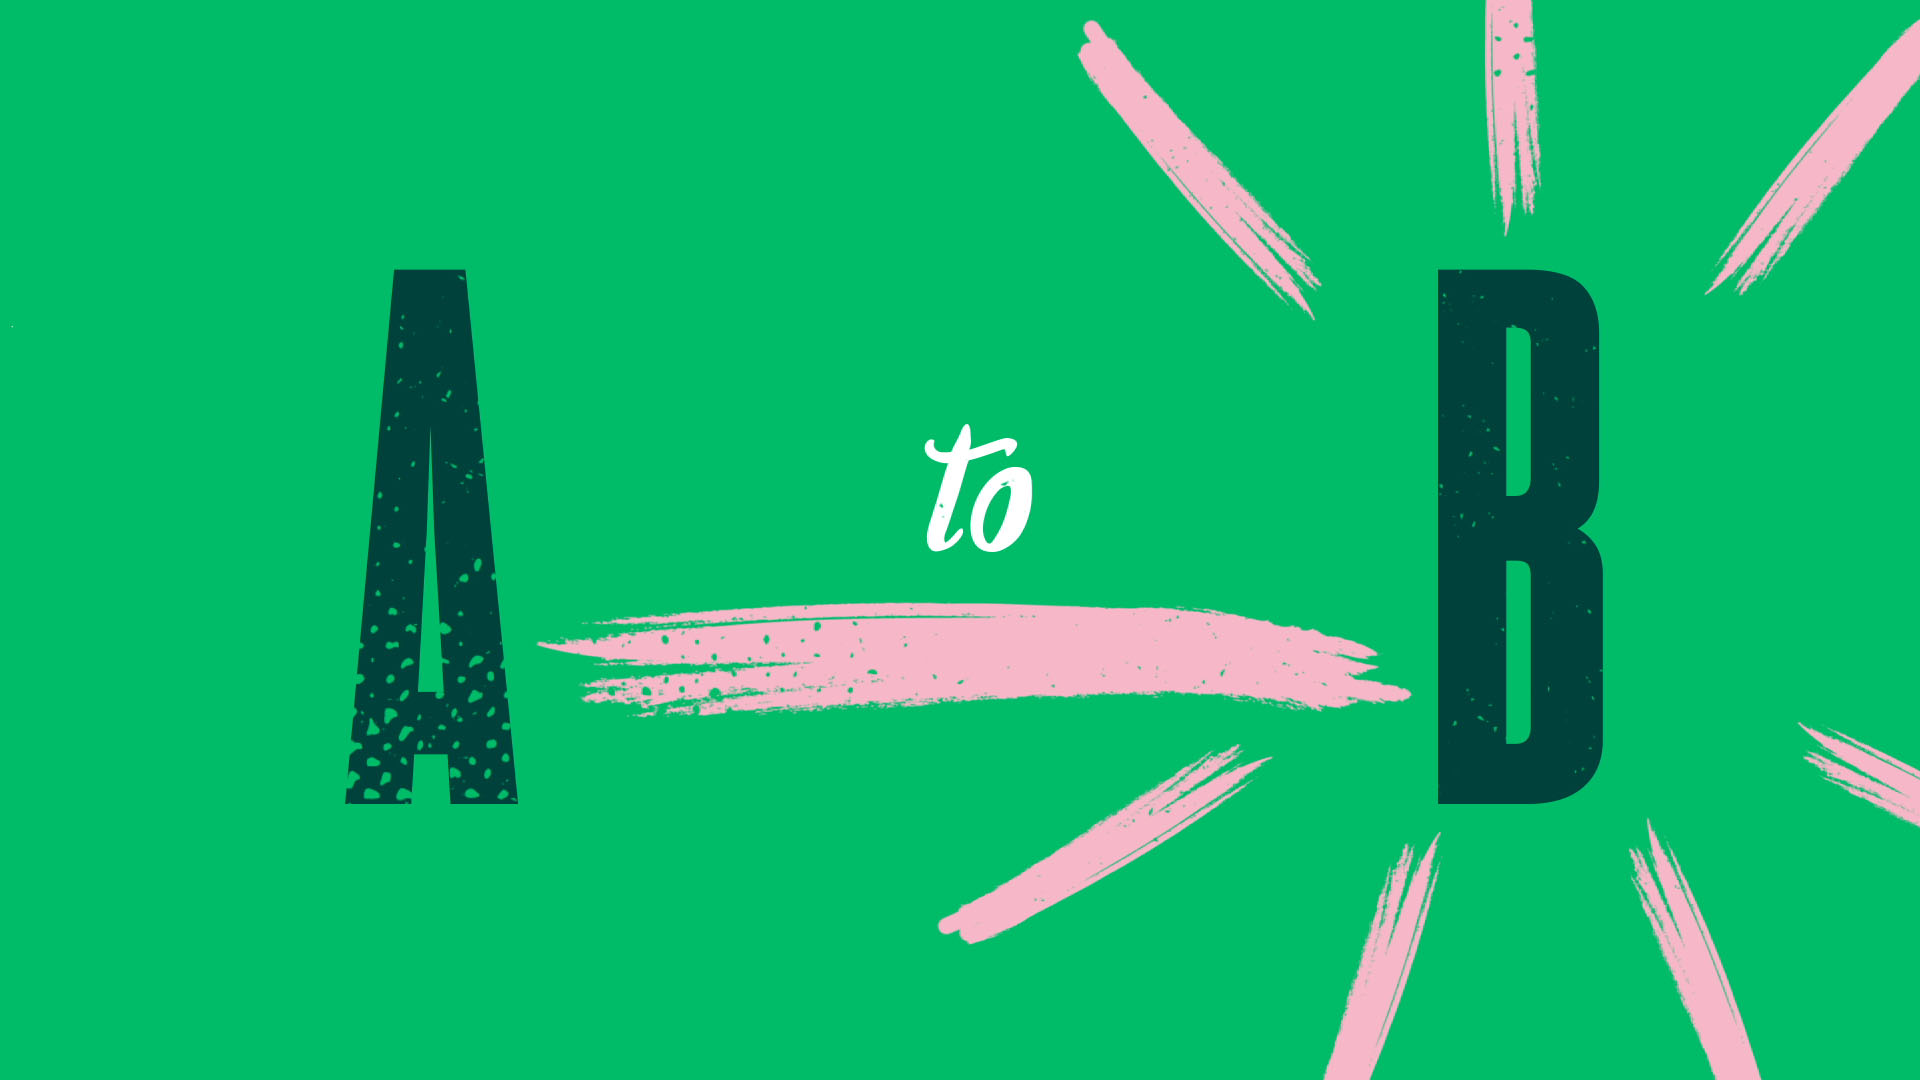 kinetic typography animation london a to b